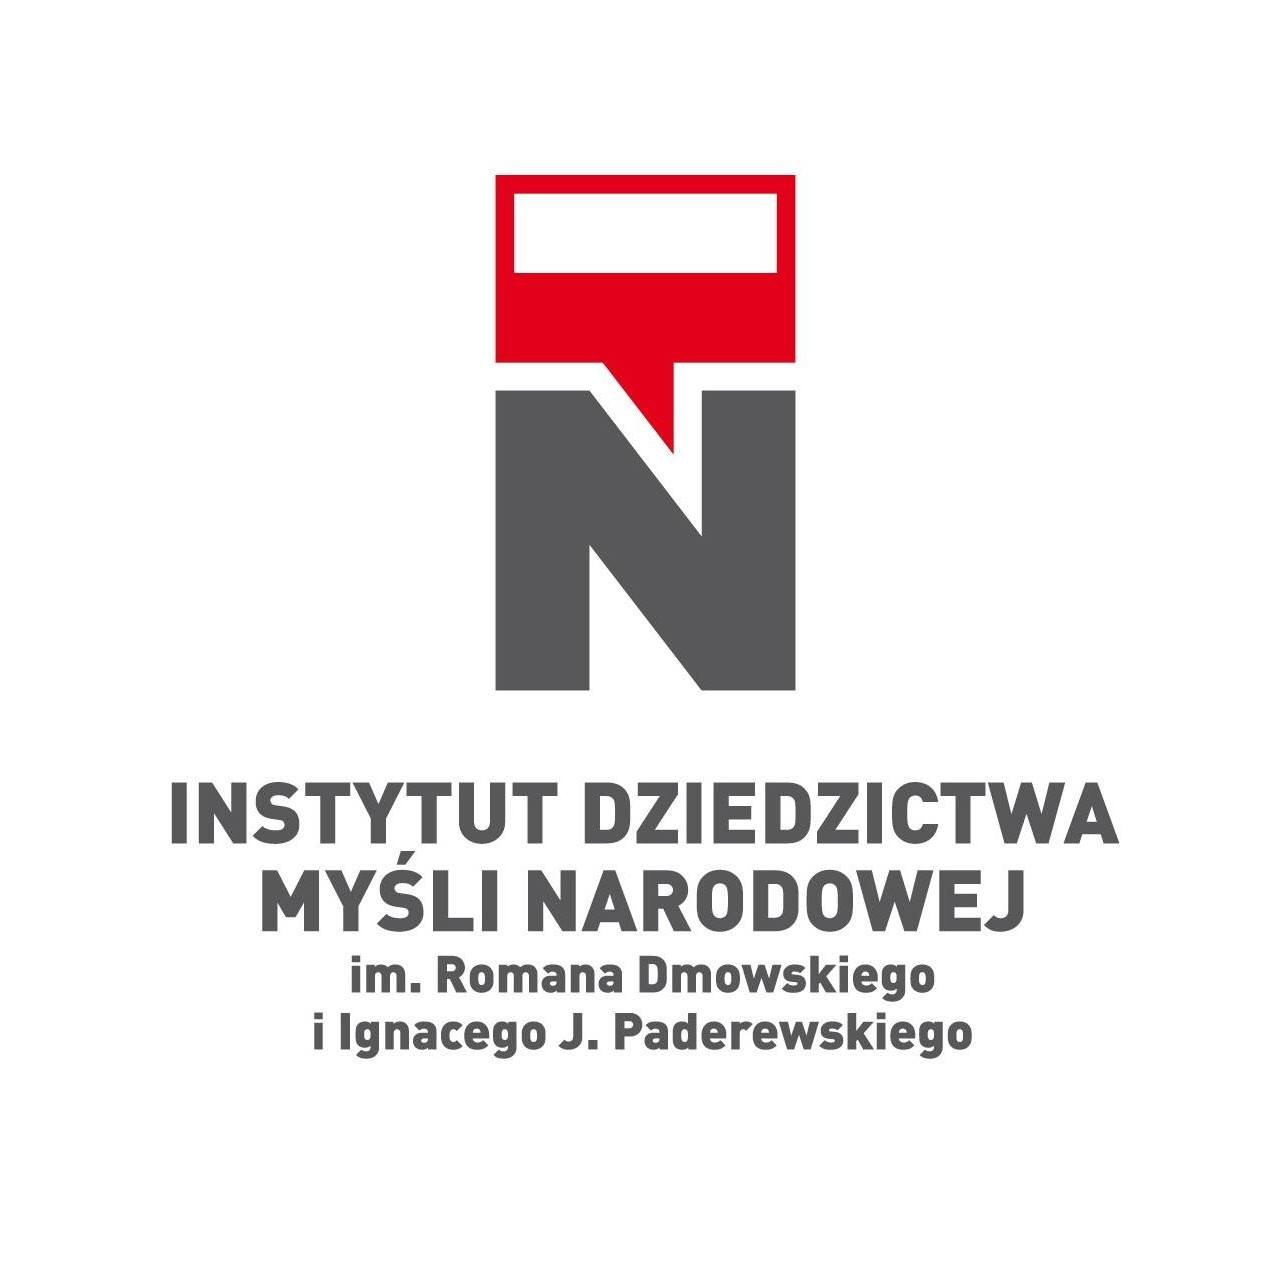 Instytut Dziedzictwa Myśli Narodowej im. Romana Dmowskiego i Ignacego Jana Paderewskiego